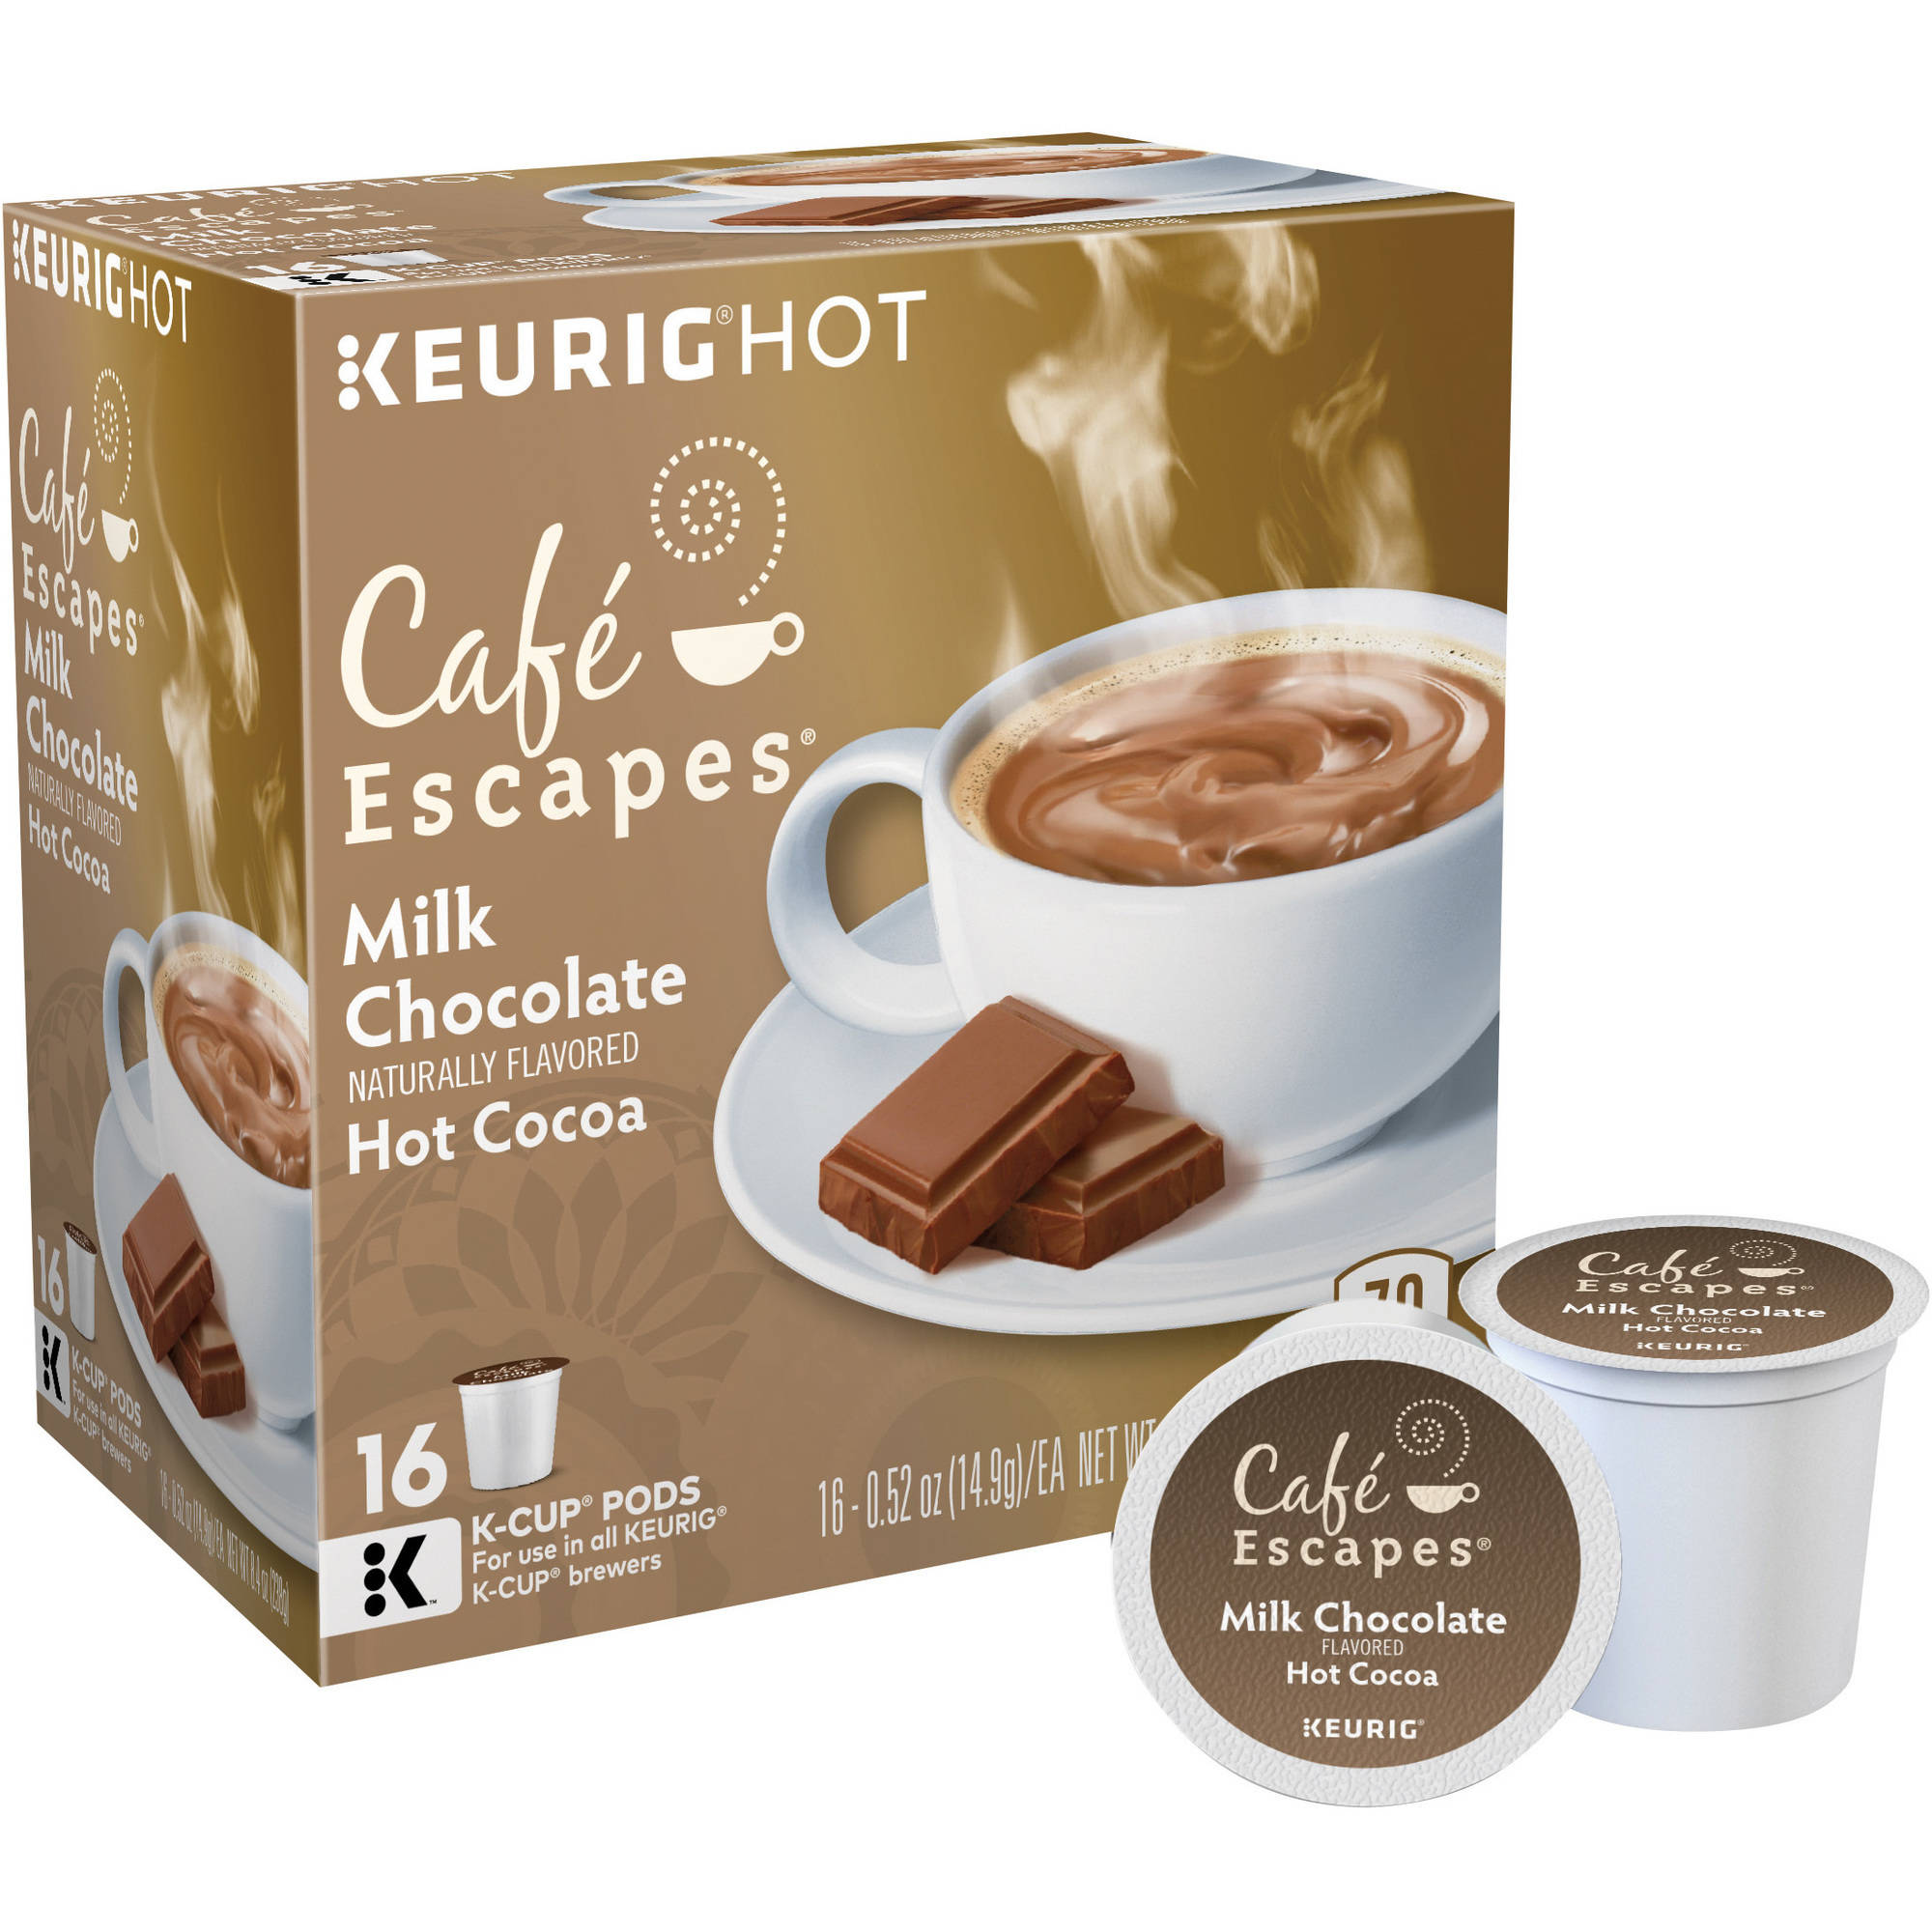 Keurig Green Mountain Cafe Escapes Milk Chocolate Cocoa, 16 count